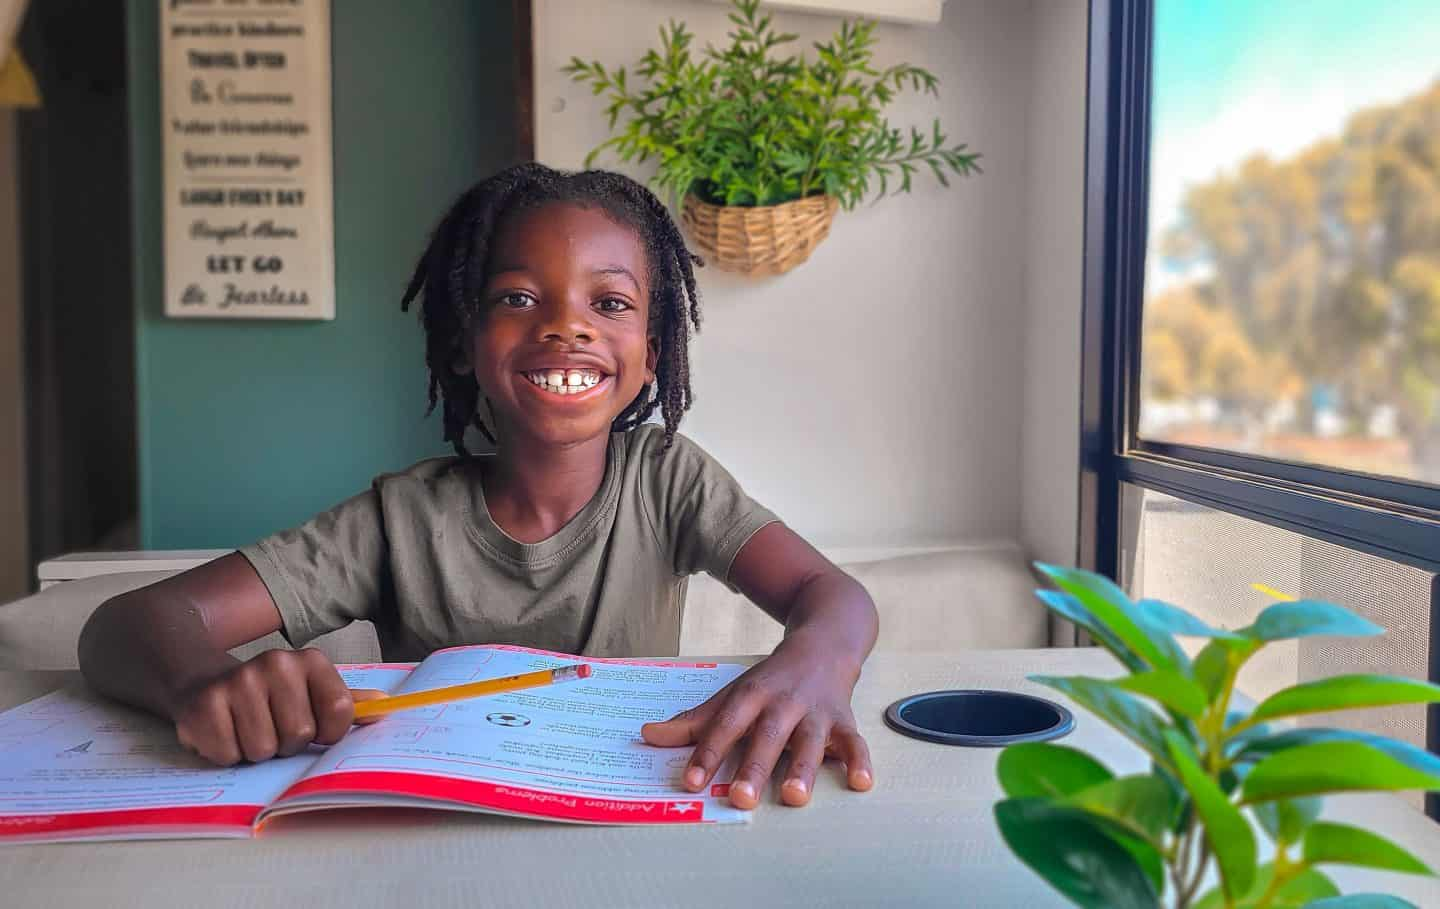 A young boy sits at a desk with a school workbook open smiling and holding a pencil enjoying his homeschooling lesson.